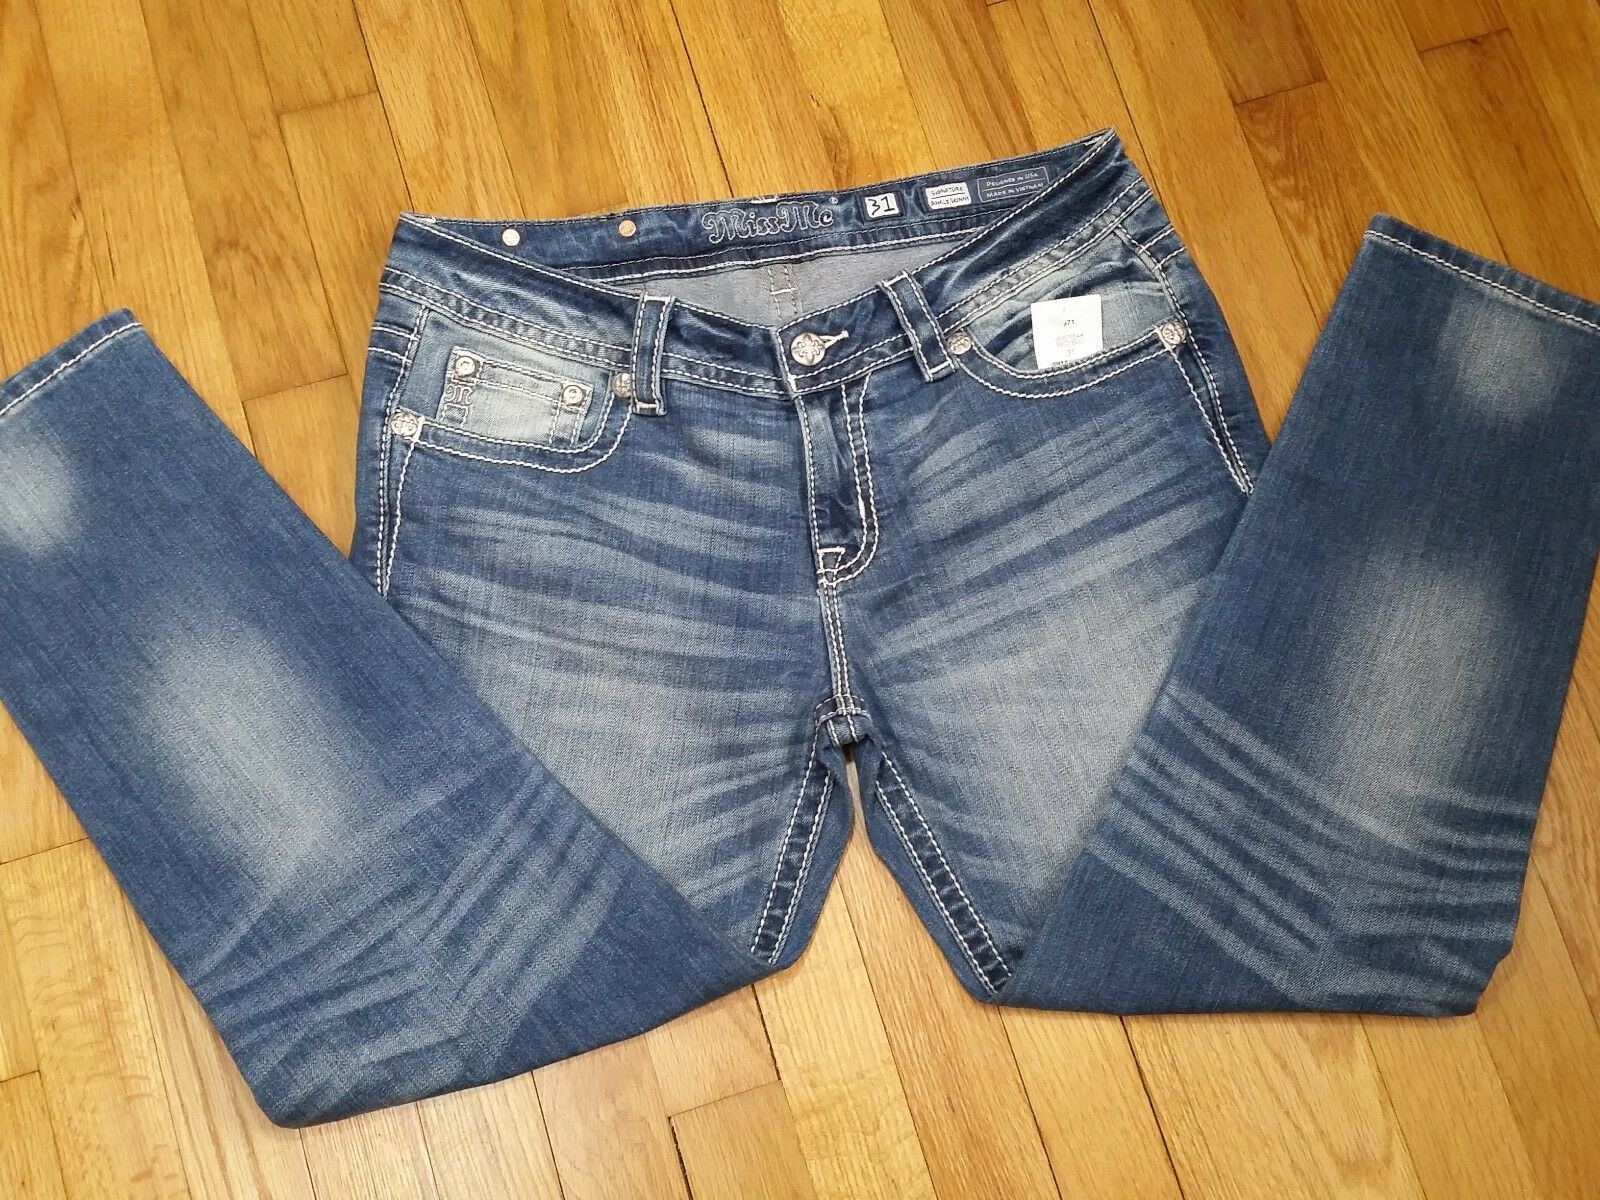 Miss Me Skinny Ankle Jeans Size 31 Low Rise Medium Wash JP8715AK New With Tags